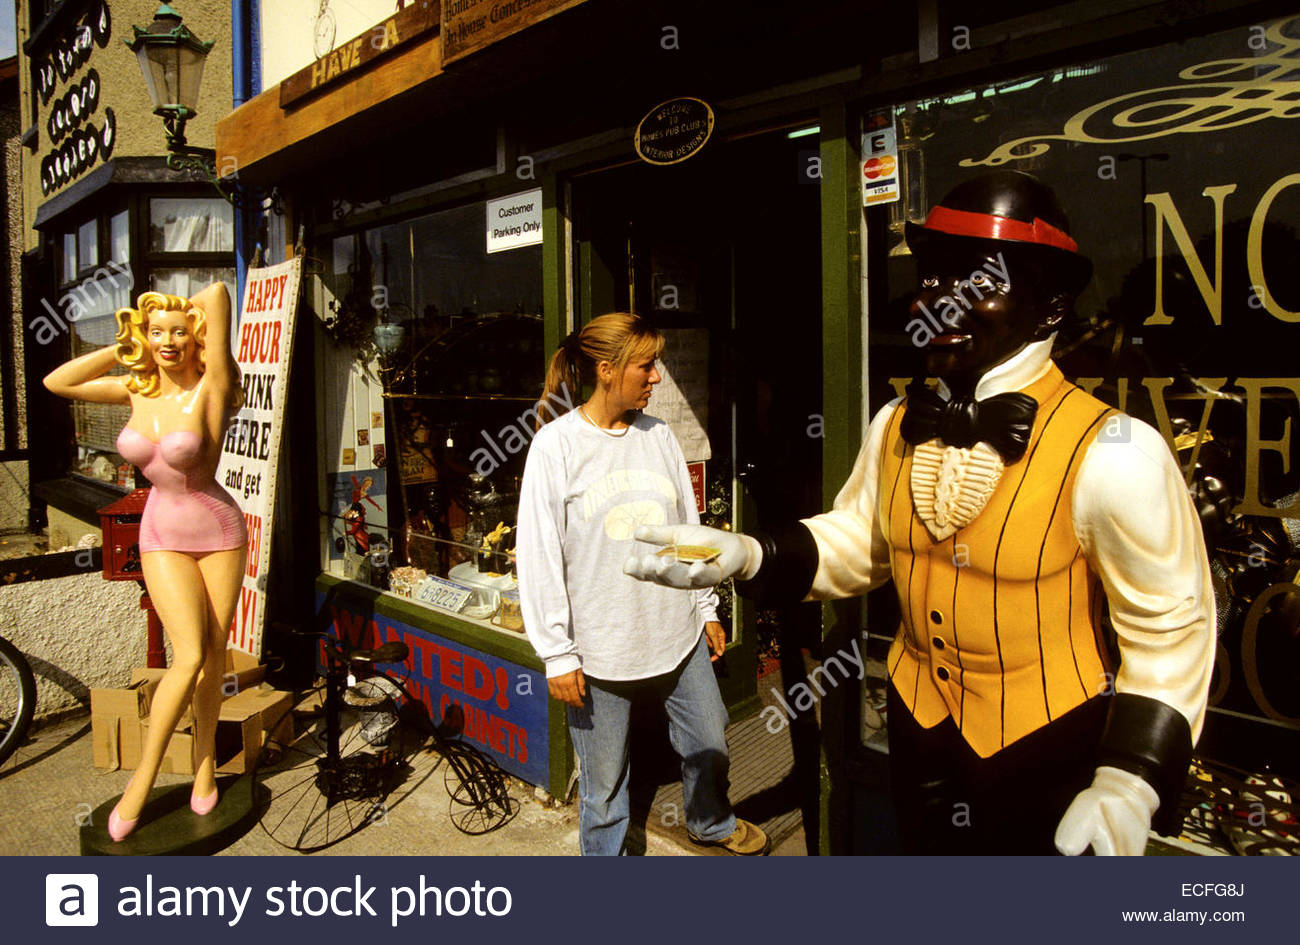 Northern Ireland, Portrush. Tourist in front of antic shop - Stock Image